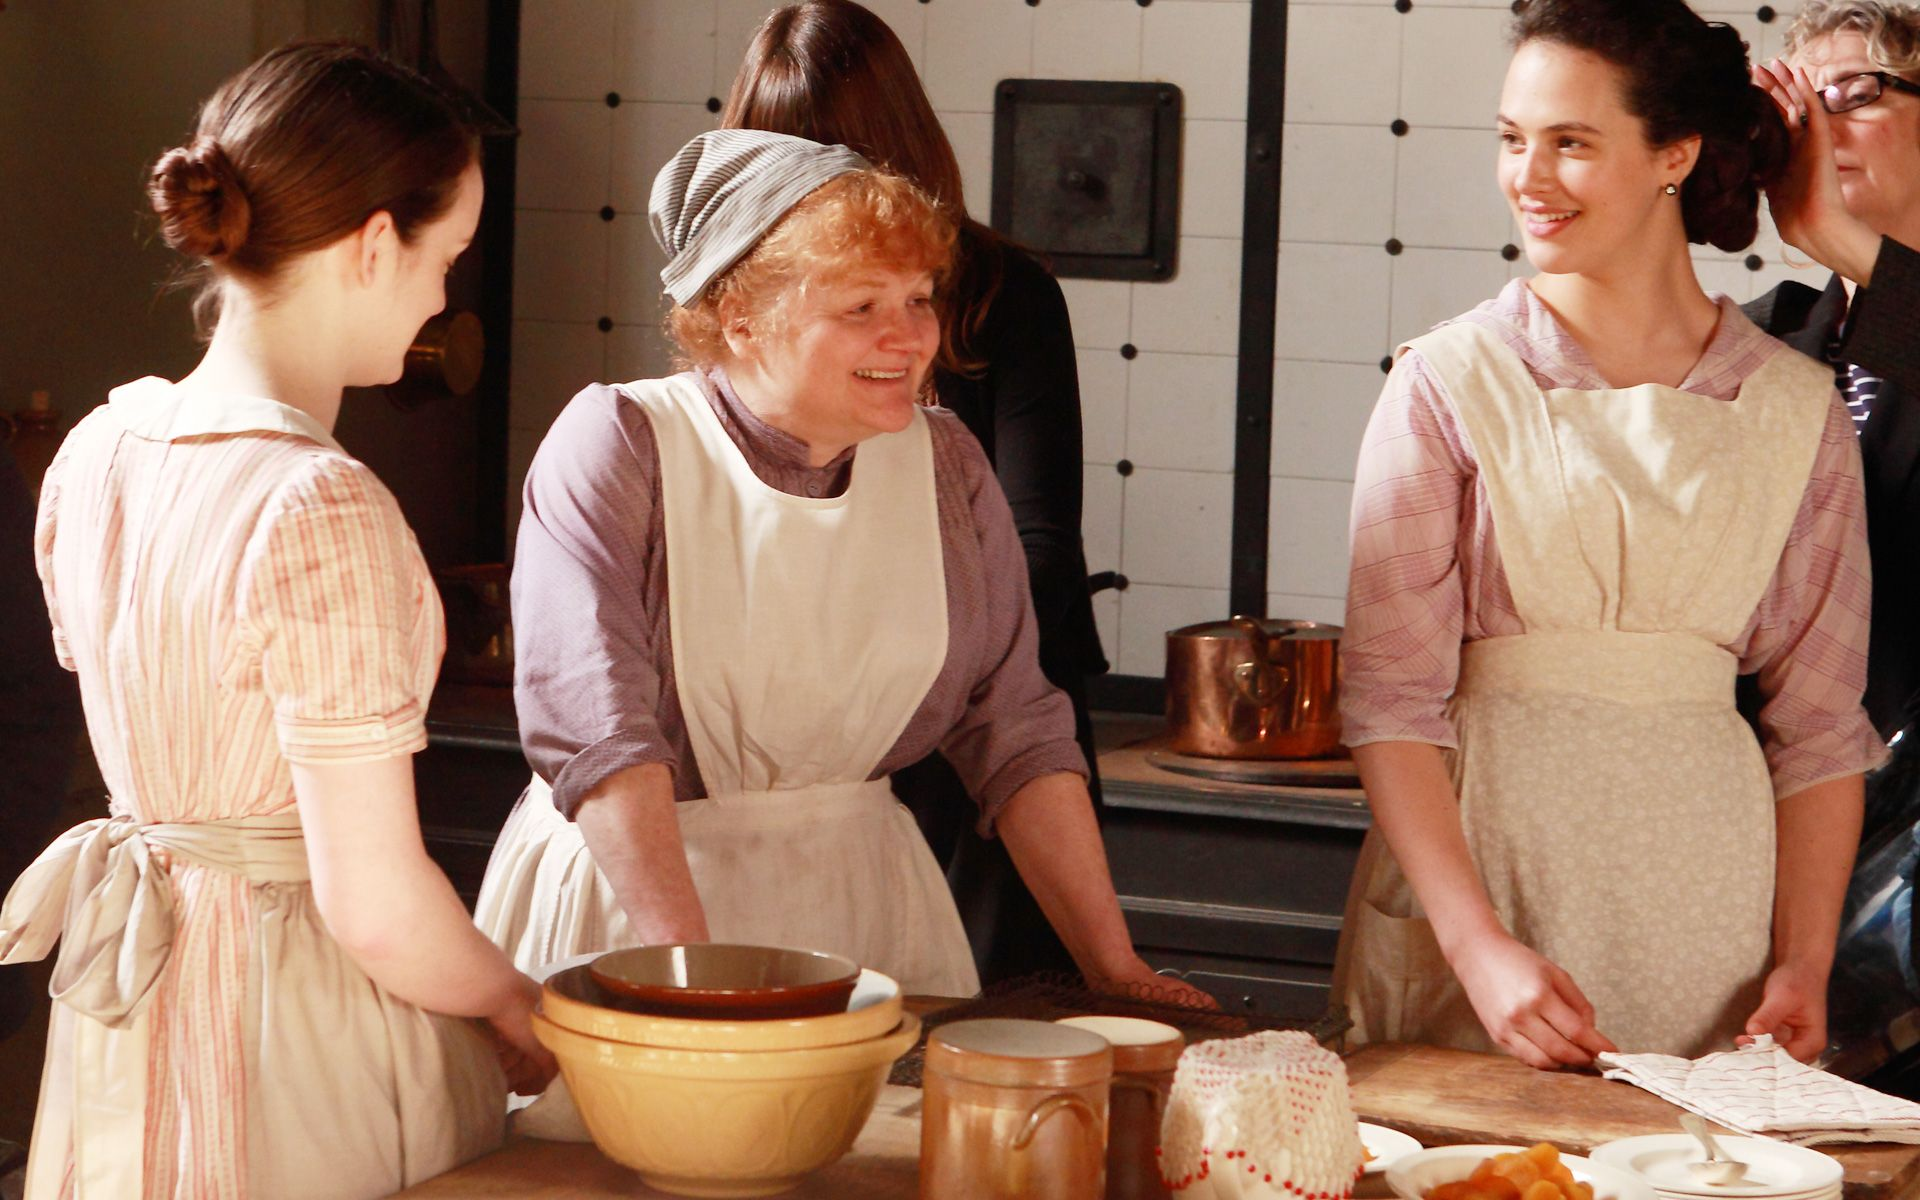 Downton Abbey Series 2, Episode 1 Behind-the-Scenes - Daisy, Mrs. Patmore, and Lady Sybil